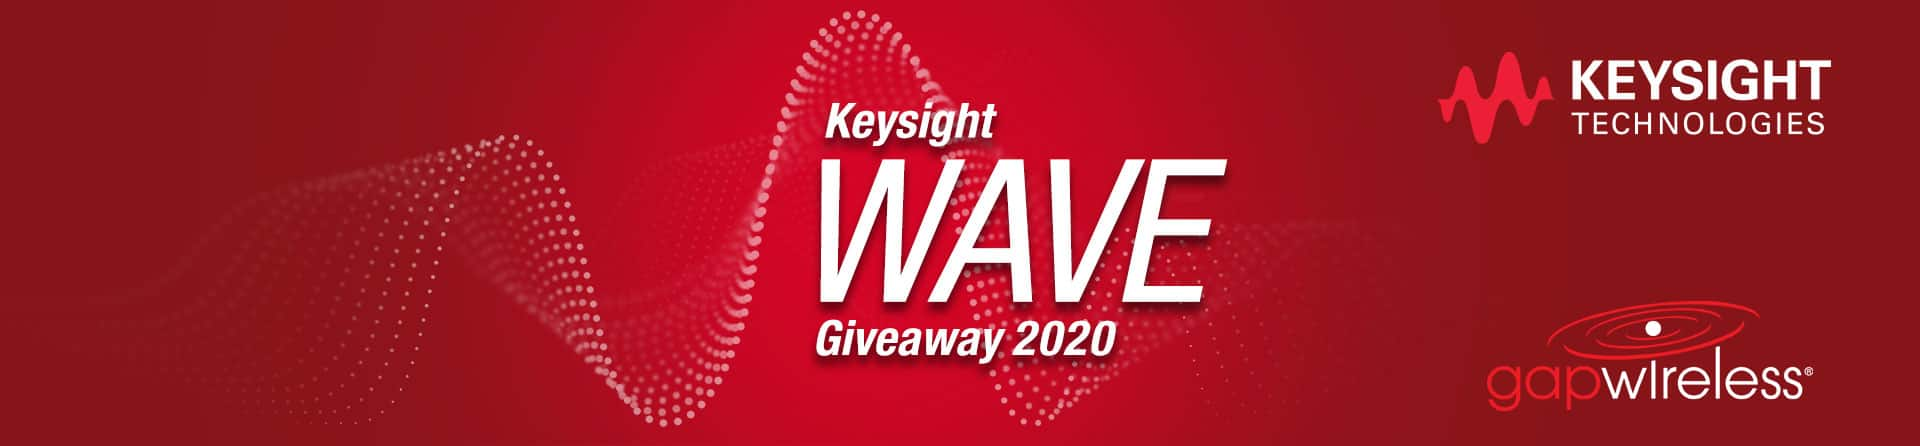 Keysight Wave Giveaway 2020